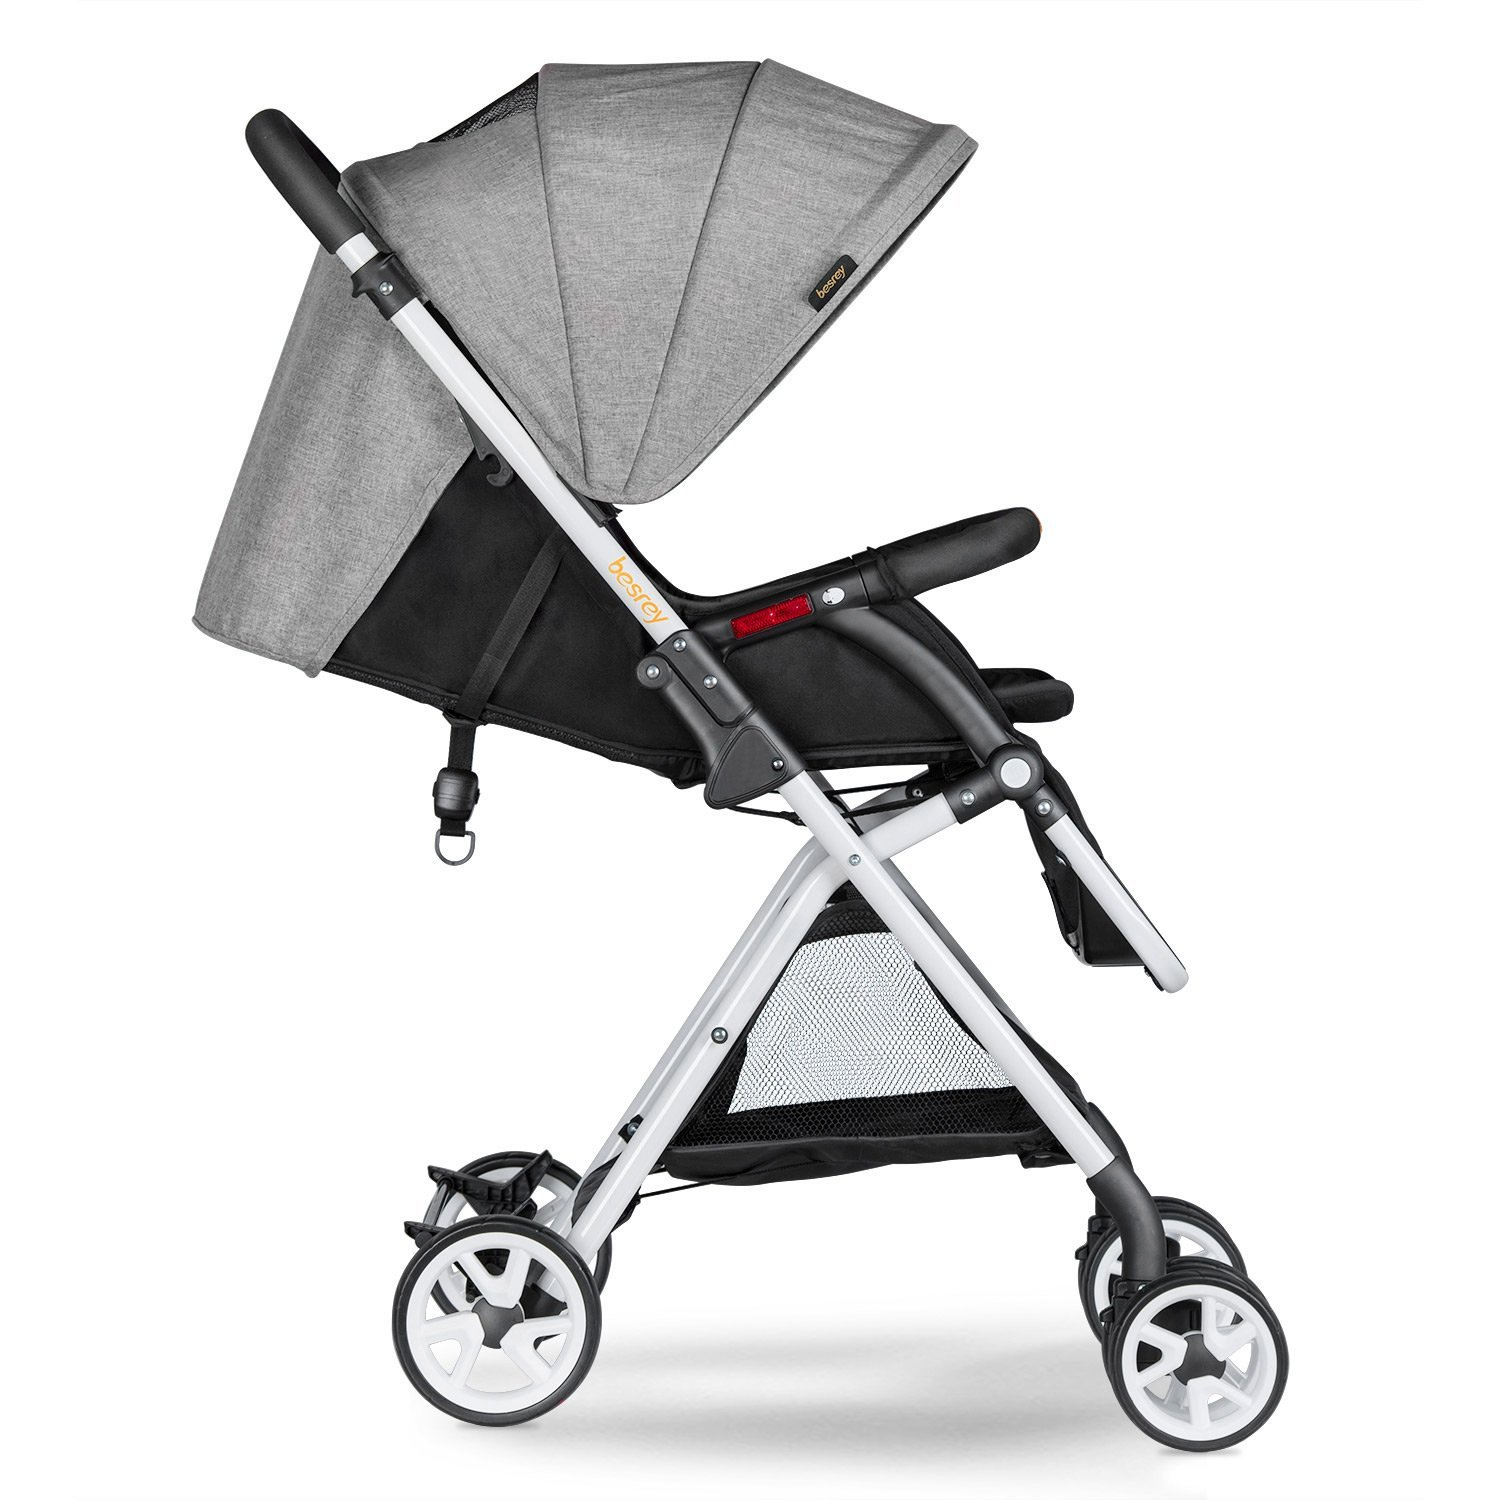 Our travel stroller